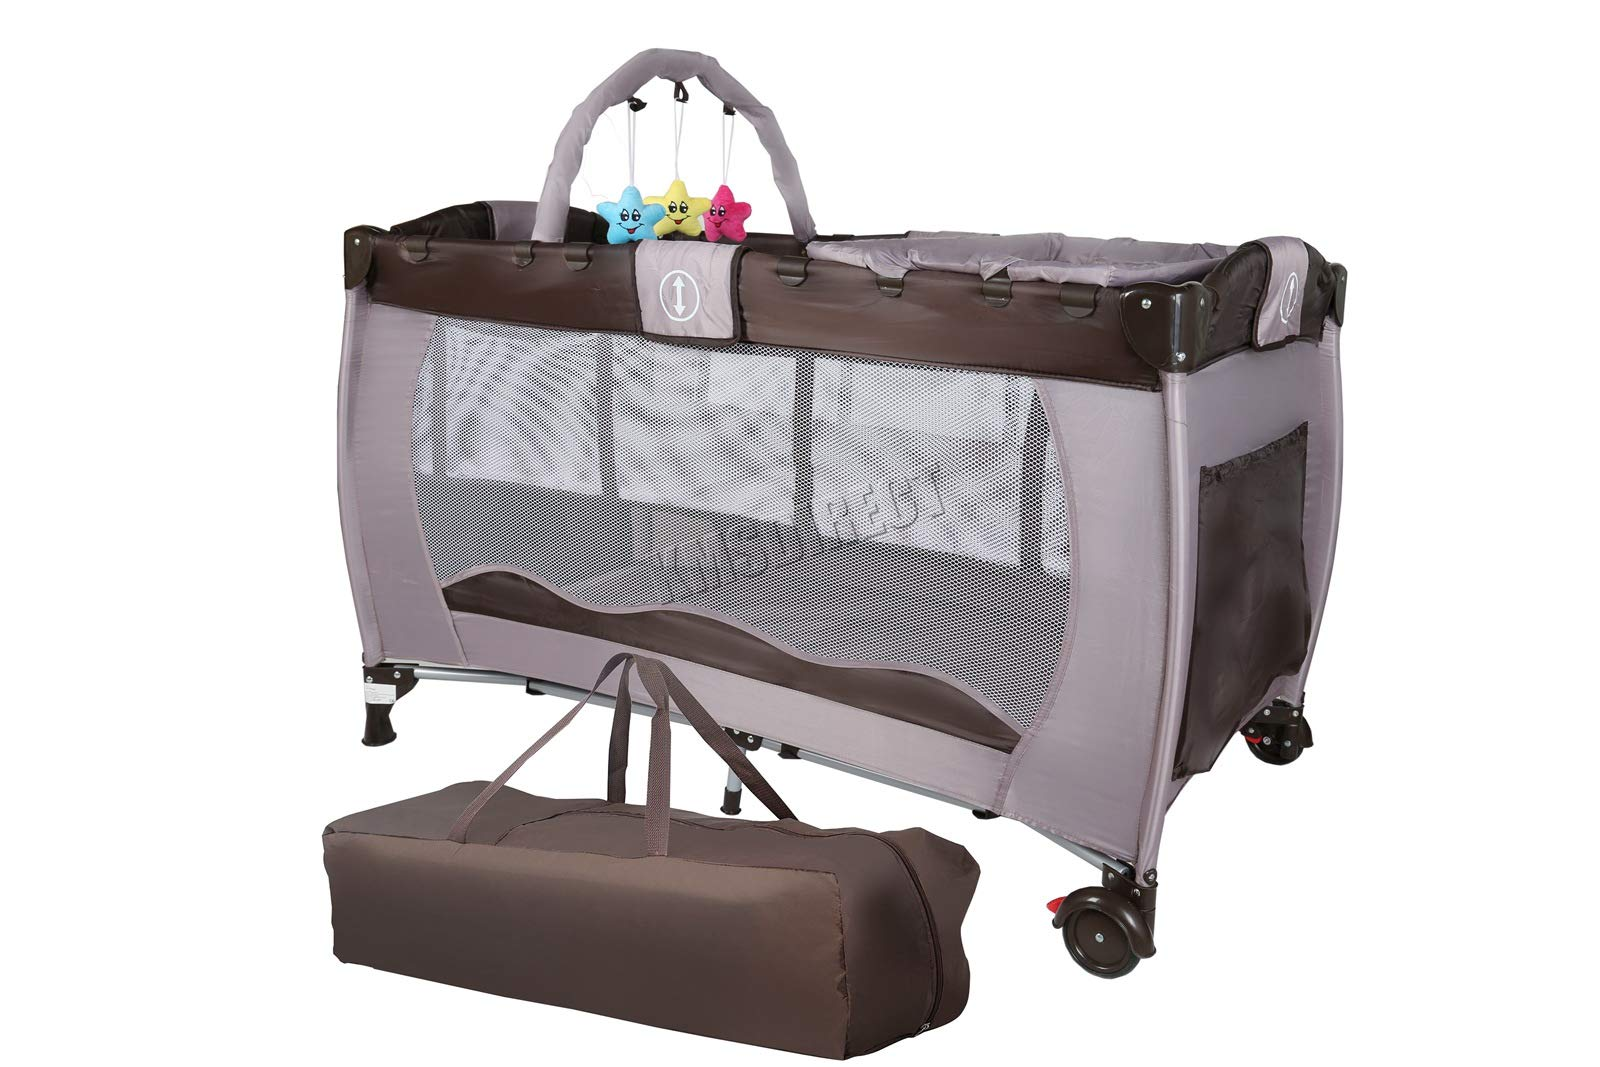 FoxHunter Portable Baby Cot Sleeping Bed Kids Infant Playpen Bassinet Child Play Pen with Entryway Travel BCB01 Coffee FoxHunter Travel cot easy to assemble and disassemble thanks to folding mechanism; igh quality and light weight; Fast and easy set-up, safe material and easy to clean; 1